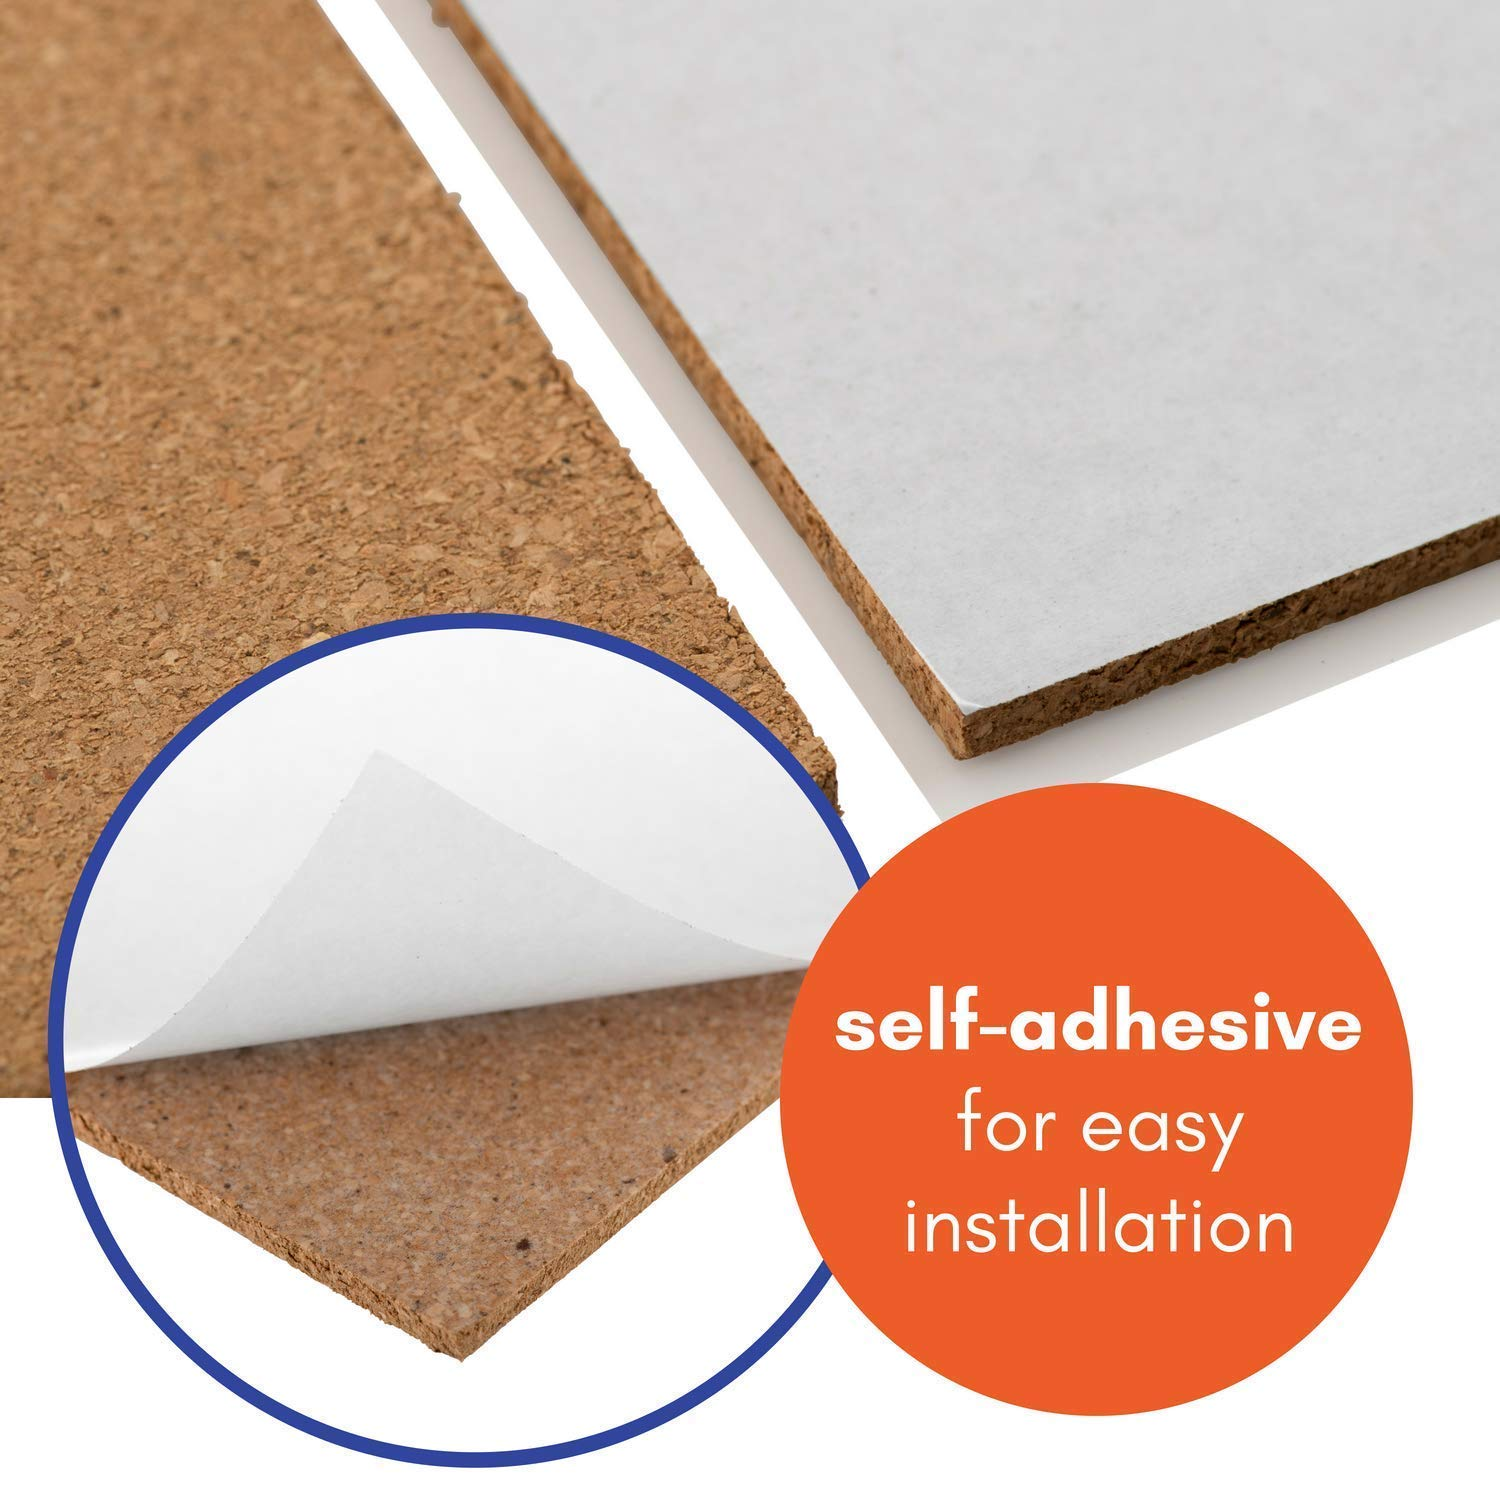 Cork Tiles Self-Adhesive (1 8 sqm coverage) - Natural 300x300mm, Tiles |  Great for Floors, Walls, DIY, Pin Boards & Craft Projects | Acts as Sound